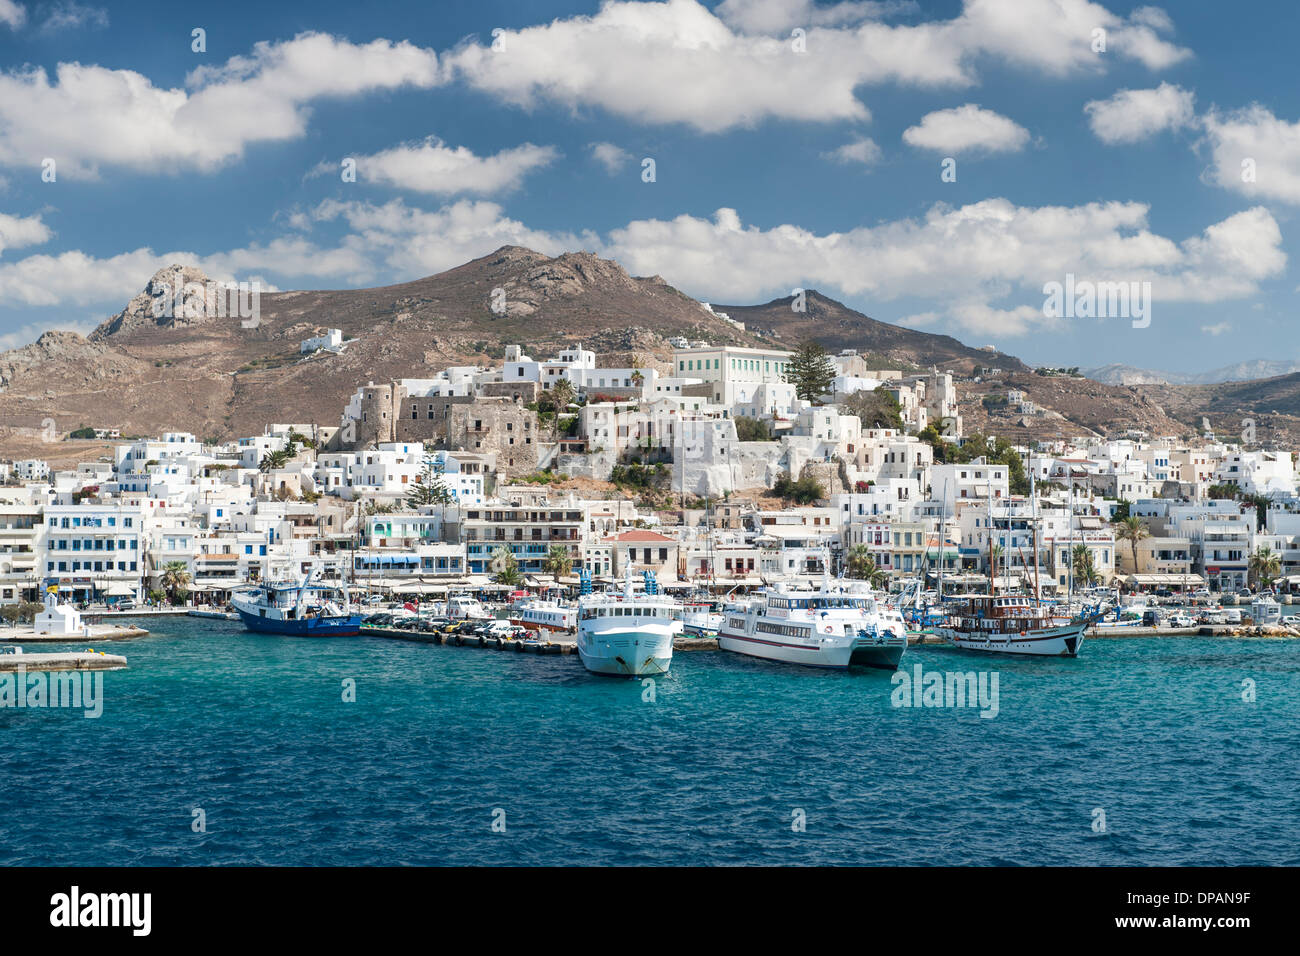 The Greek island of Naxos in the Aegean Sea. - Stock Image